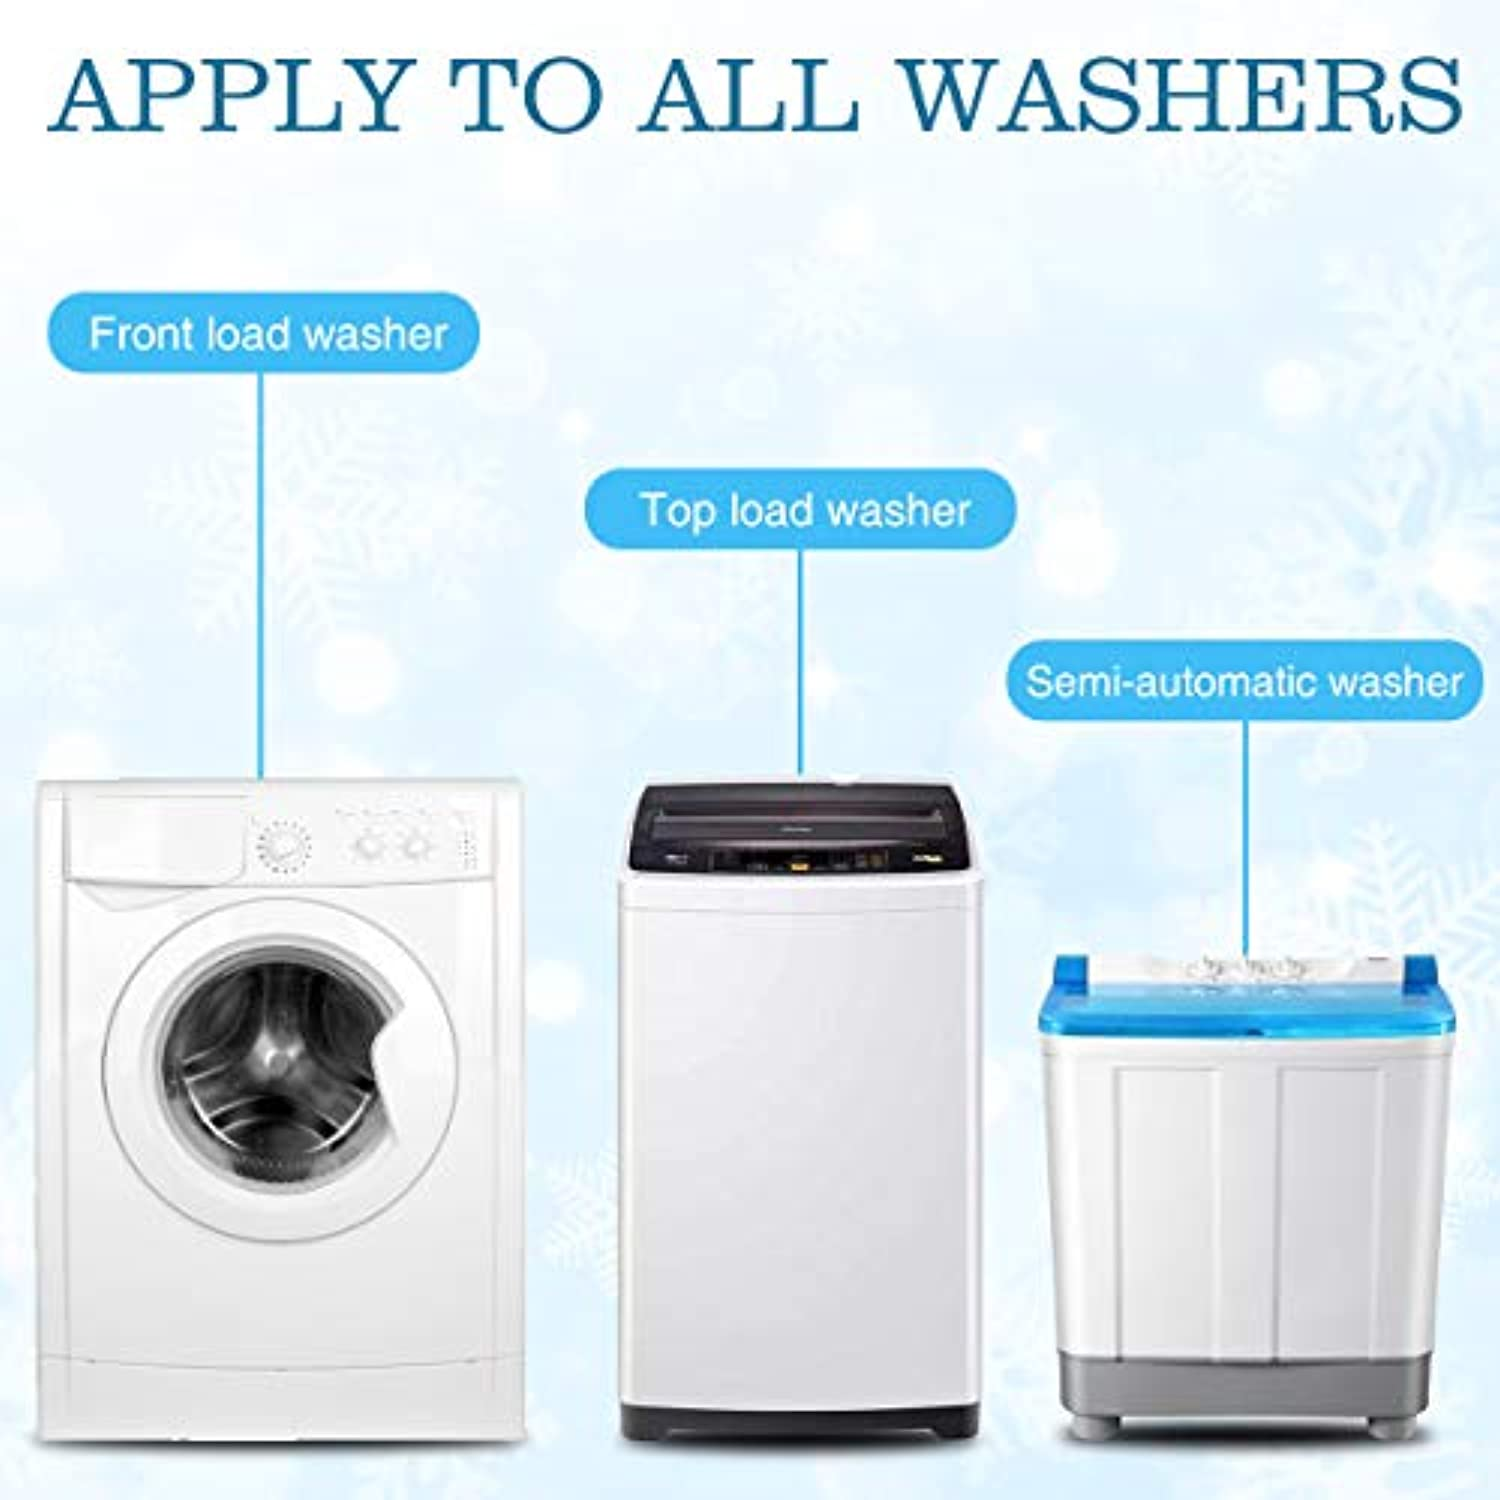 Classier: Buy CAMTOA CAMTOA Solid Washing Machine Cleaner Effervescent Tablet Washer Cleaner